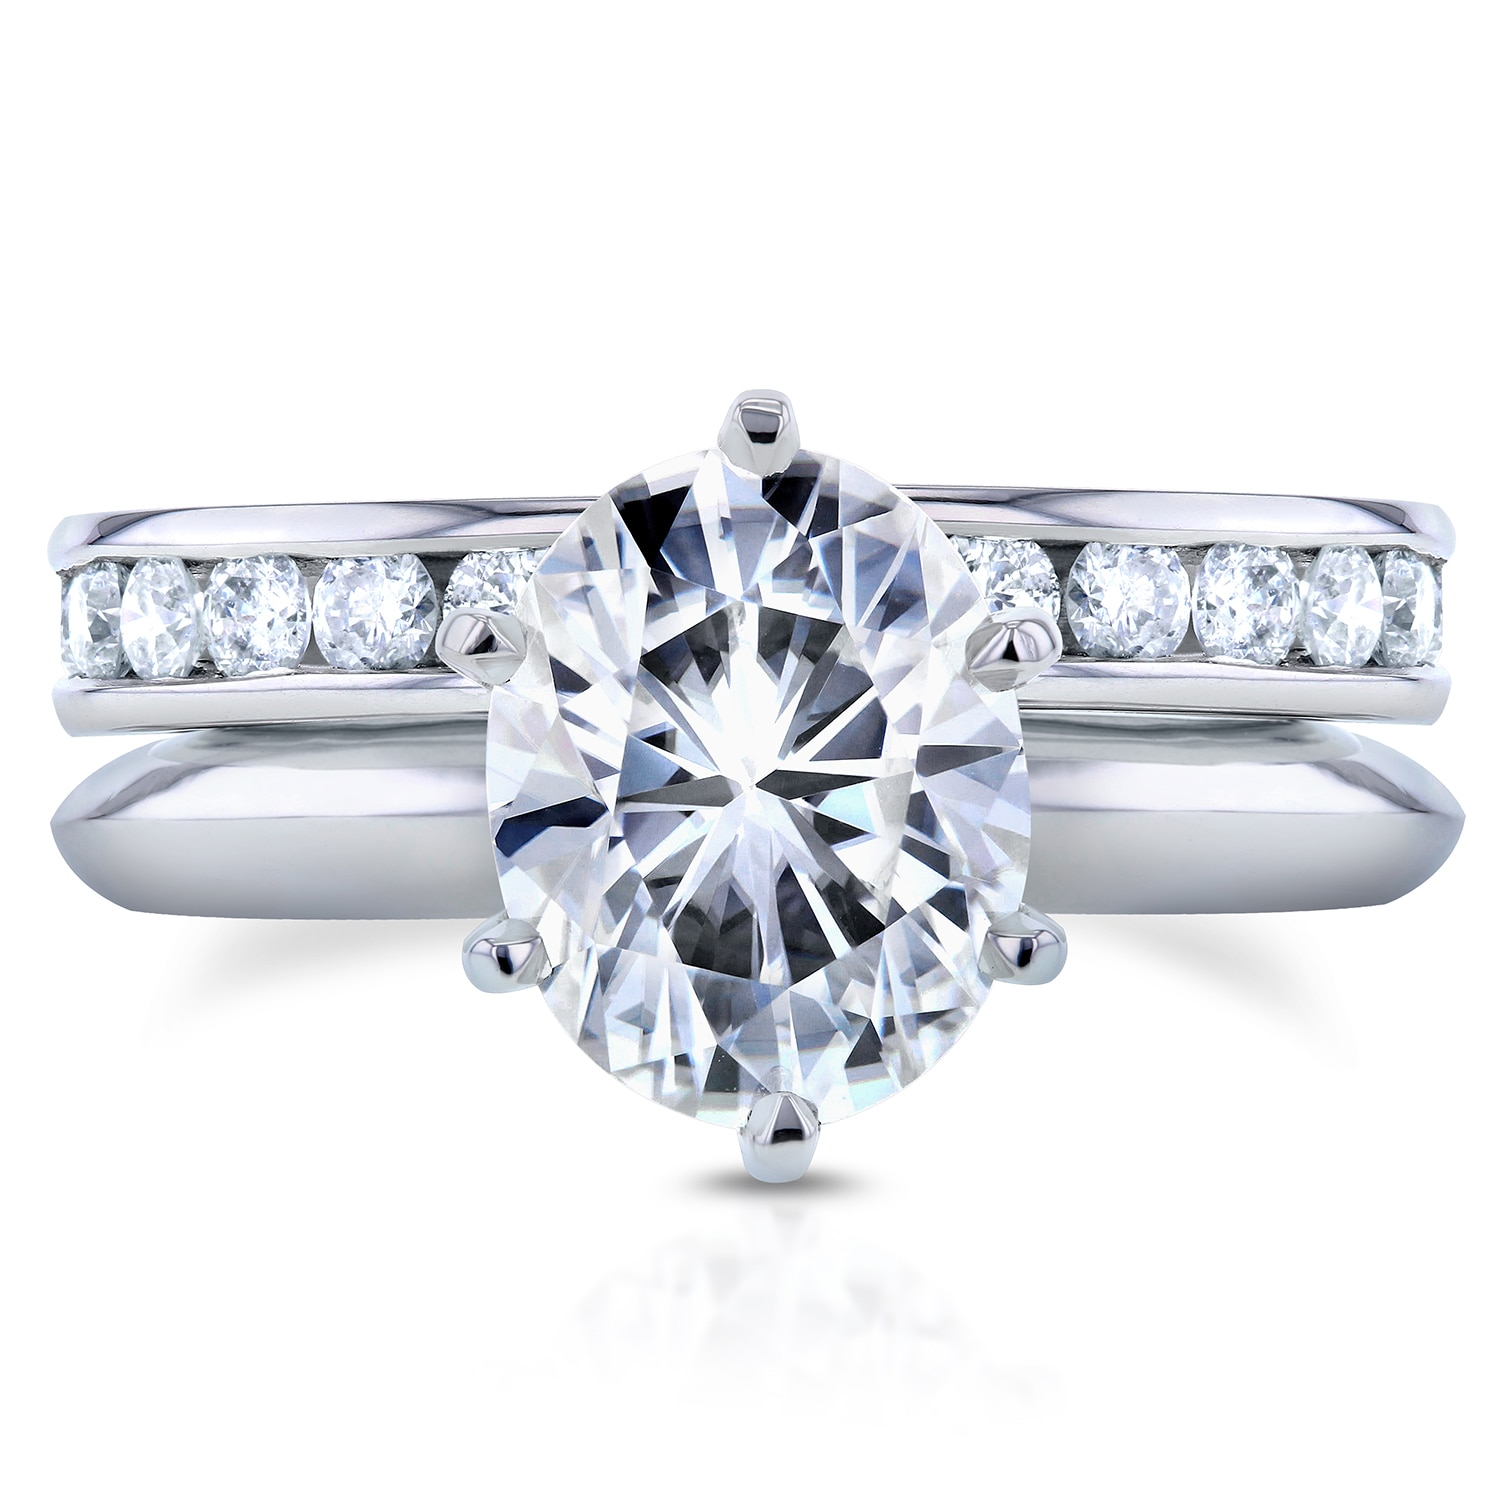 prong band product stones stone is sarah laurie moissanite eternity designs style bands wedding set with carat each